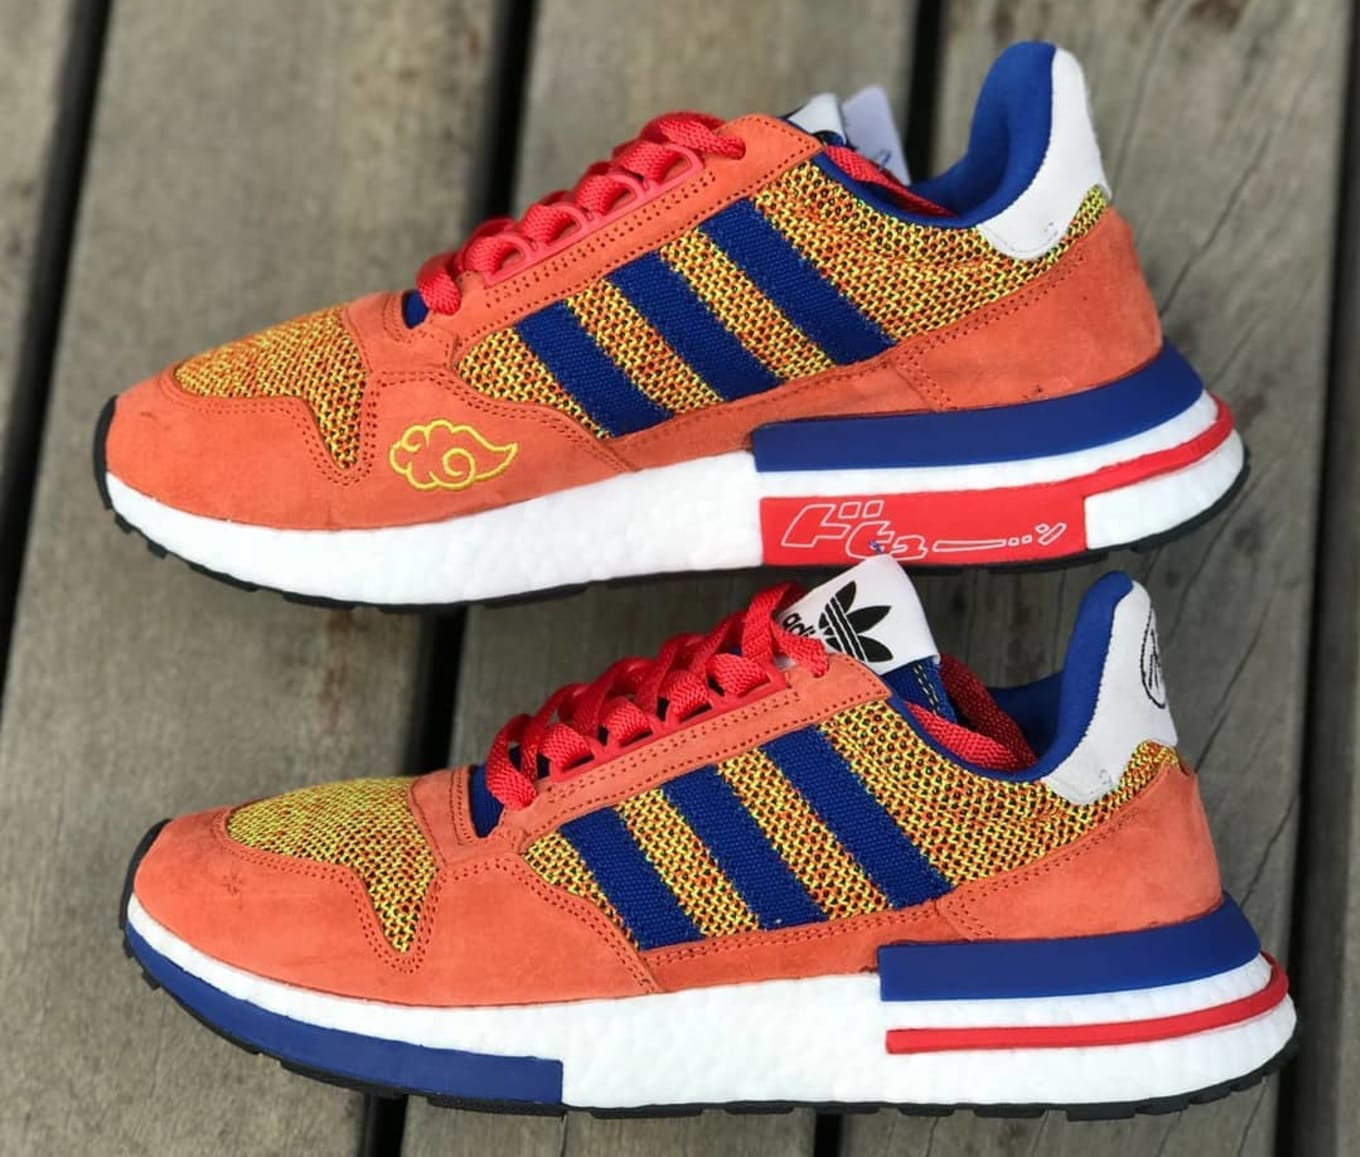 X 'son Ball Goku' Collector First Z Look Sole Zx500 Rm Adidas Dragon ESqw11